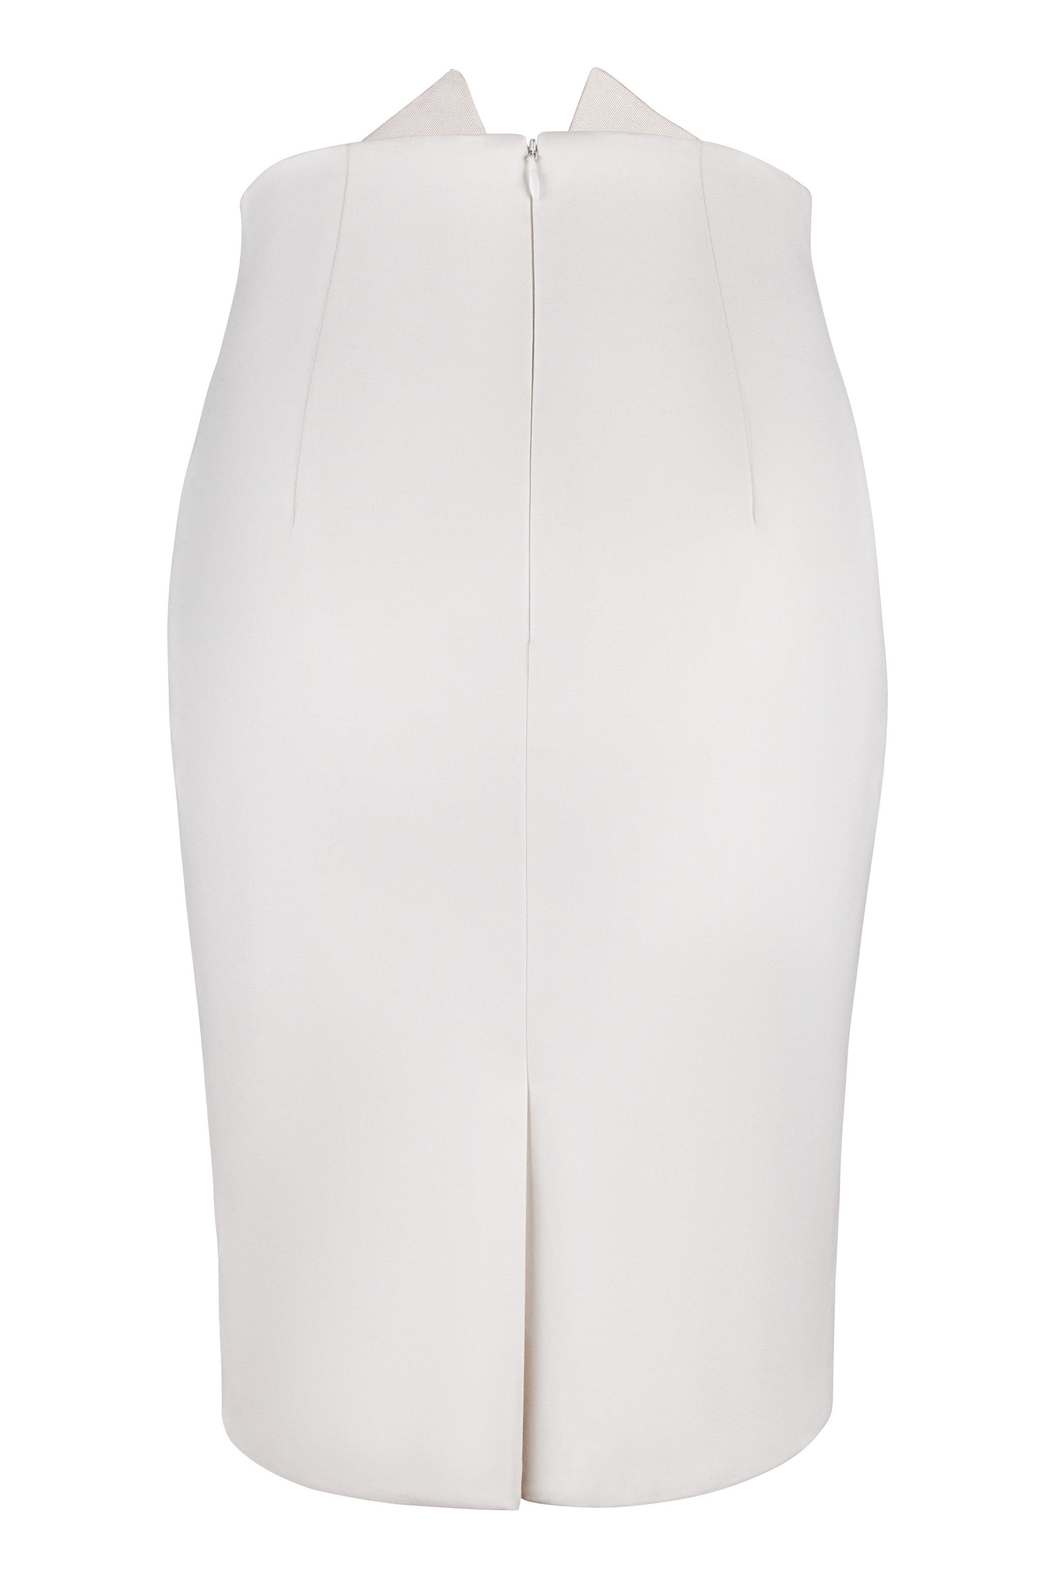 Yona New York Tori Notch Pencil Skirt / Off White - Side Cropped Image